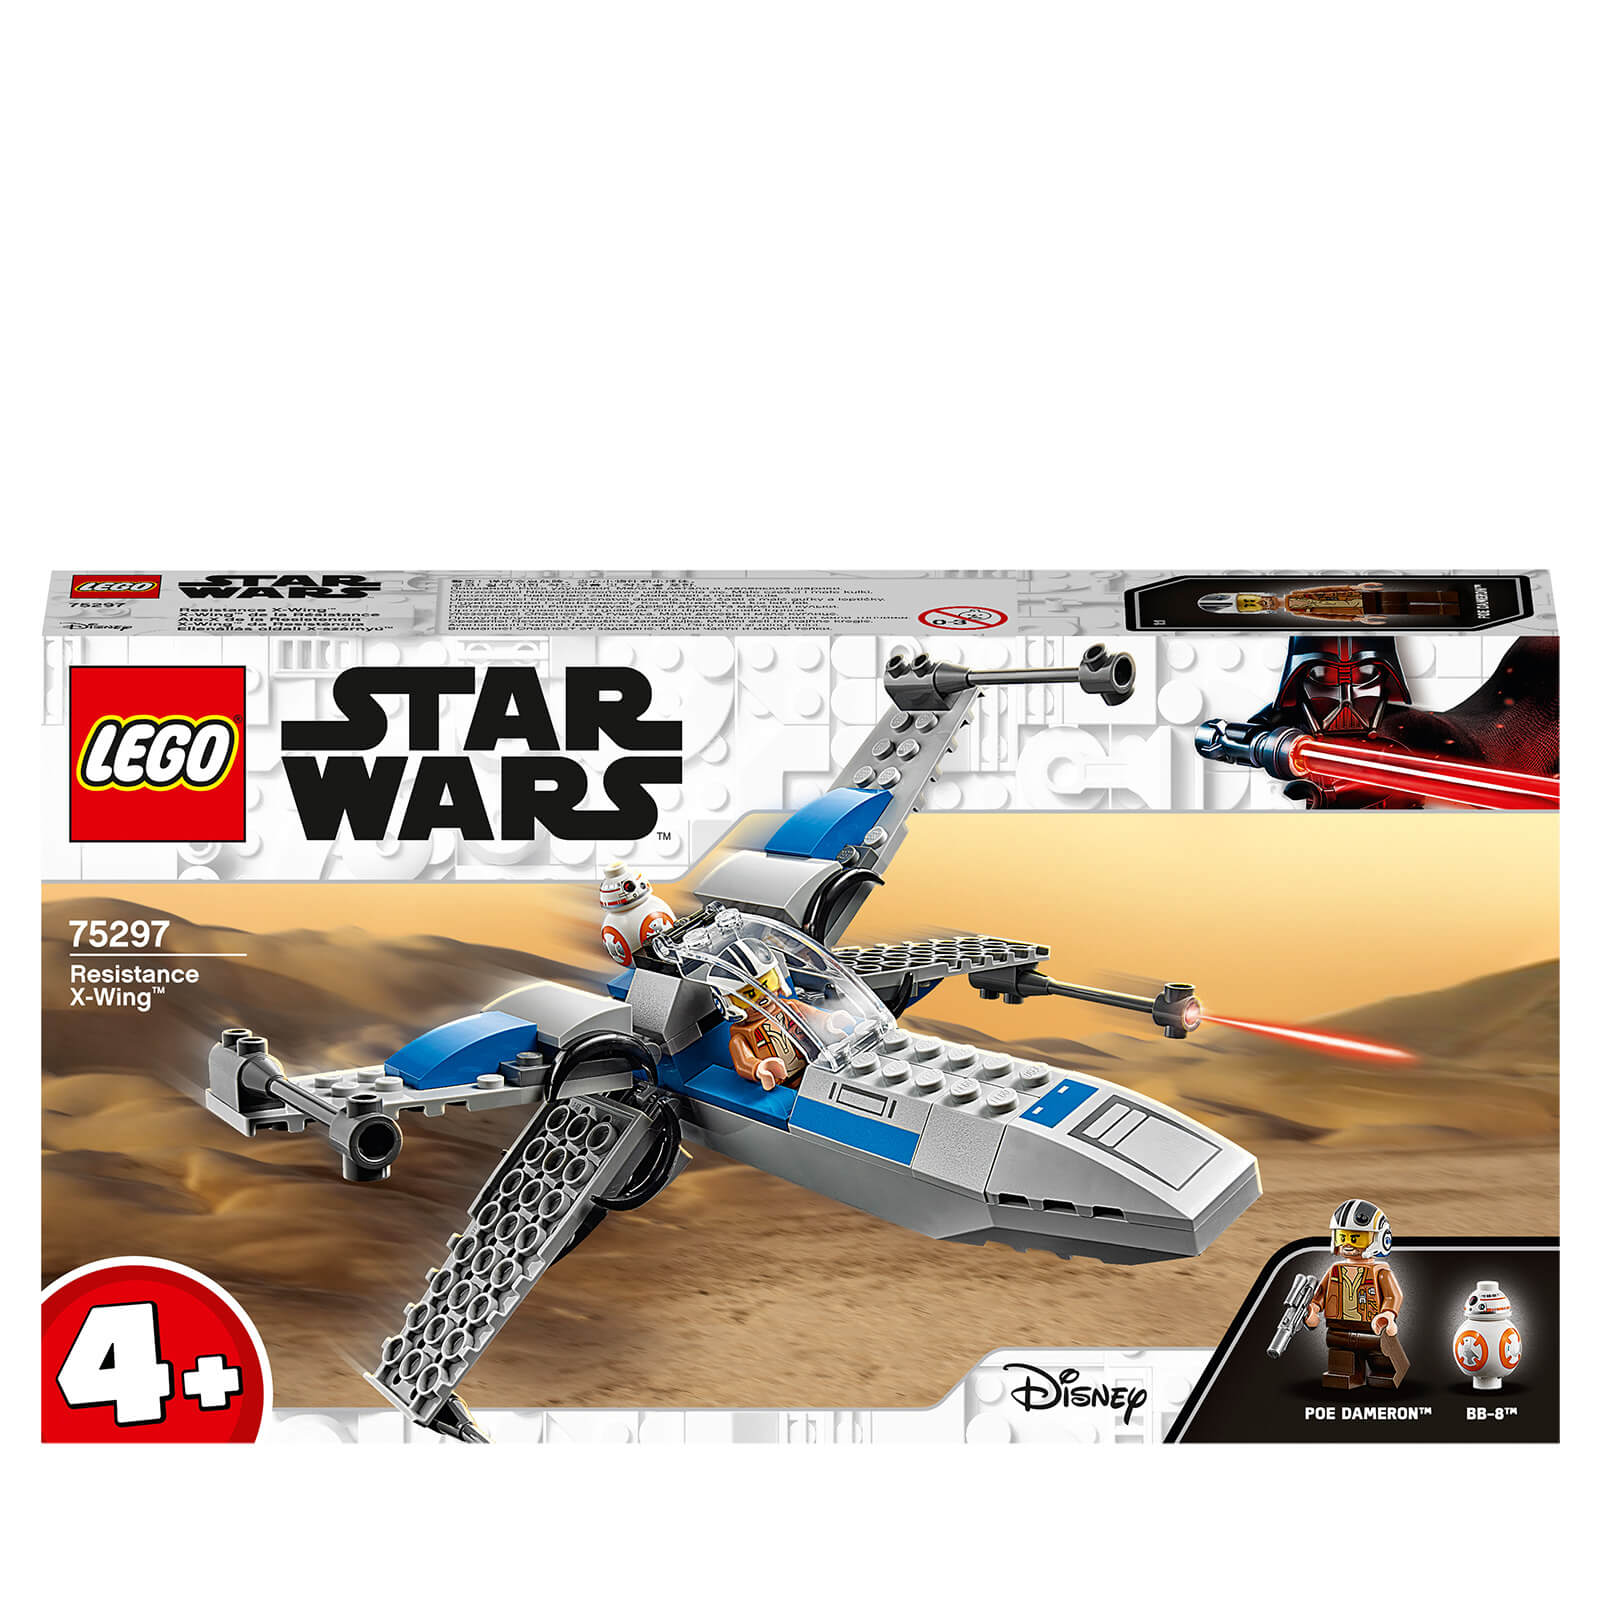 Image of LEGO Star Wars Resistance X-Wing - 75297